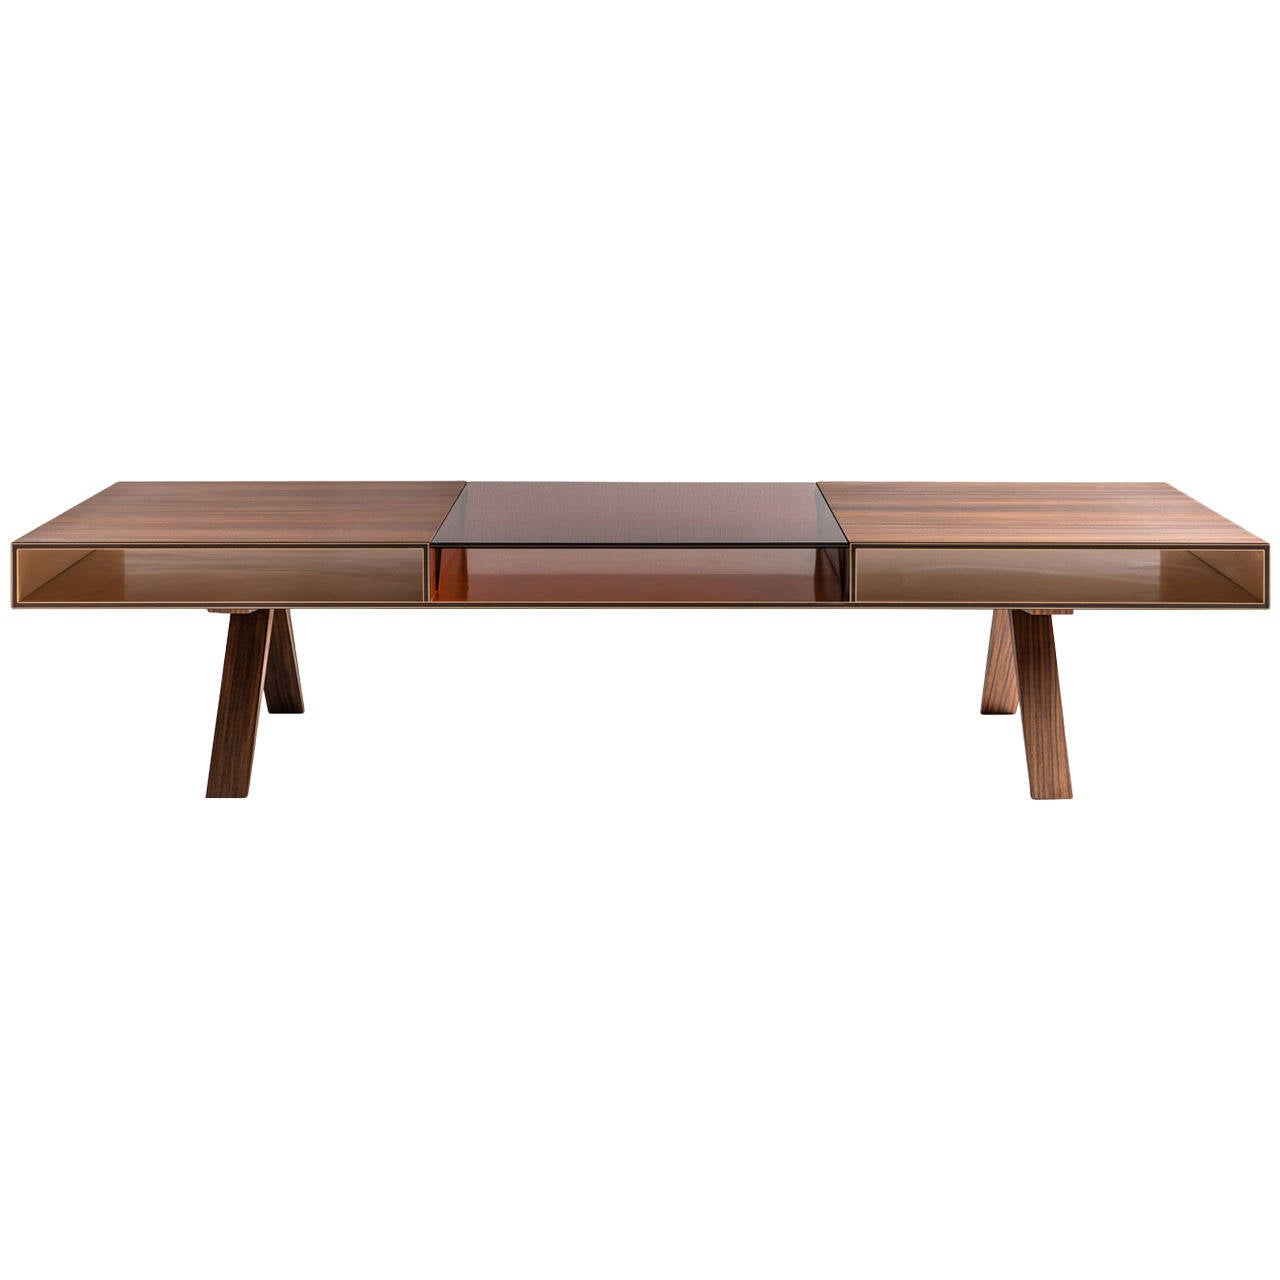 Gilroy Coffee Table With Rosewood And Colored Italian Glass Top Bronze Interior For Sale At 1stdibs